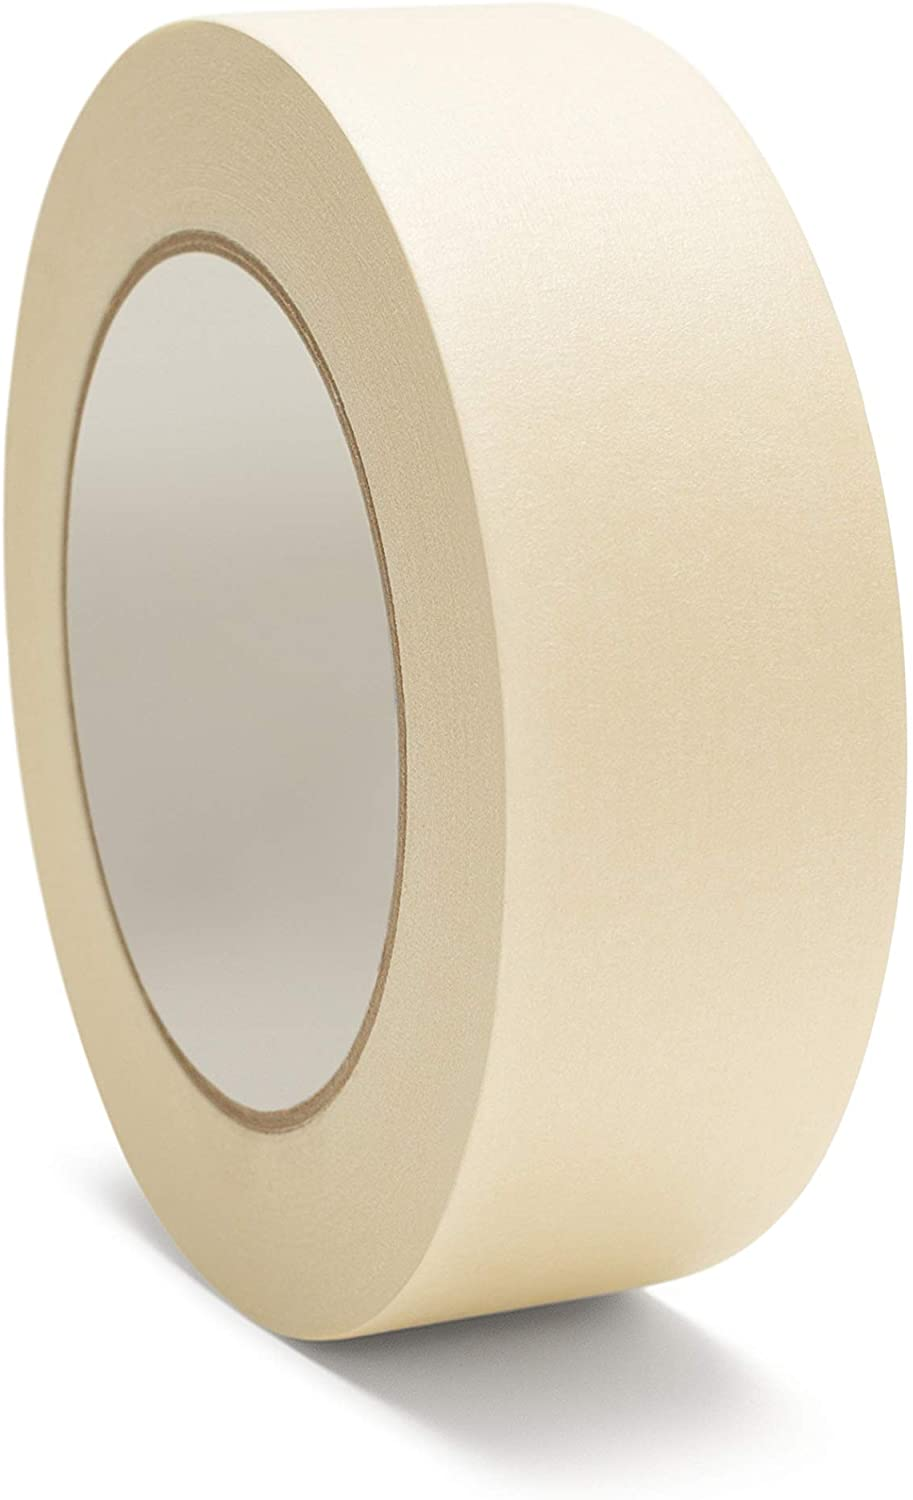 Masking Tape General Purpose 2'' x 60 yds 48MM 24 Rolls Per Case by The Boxery